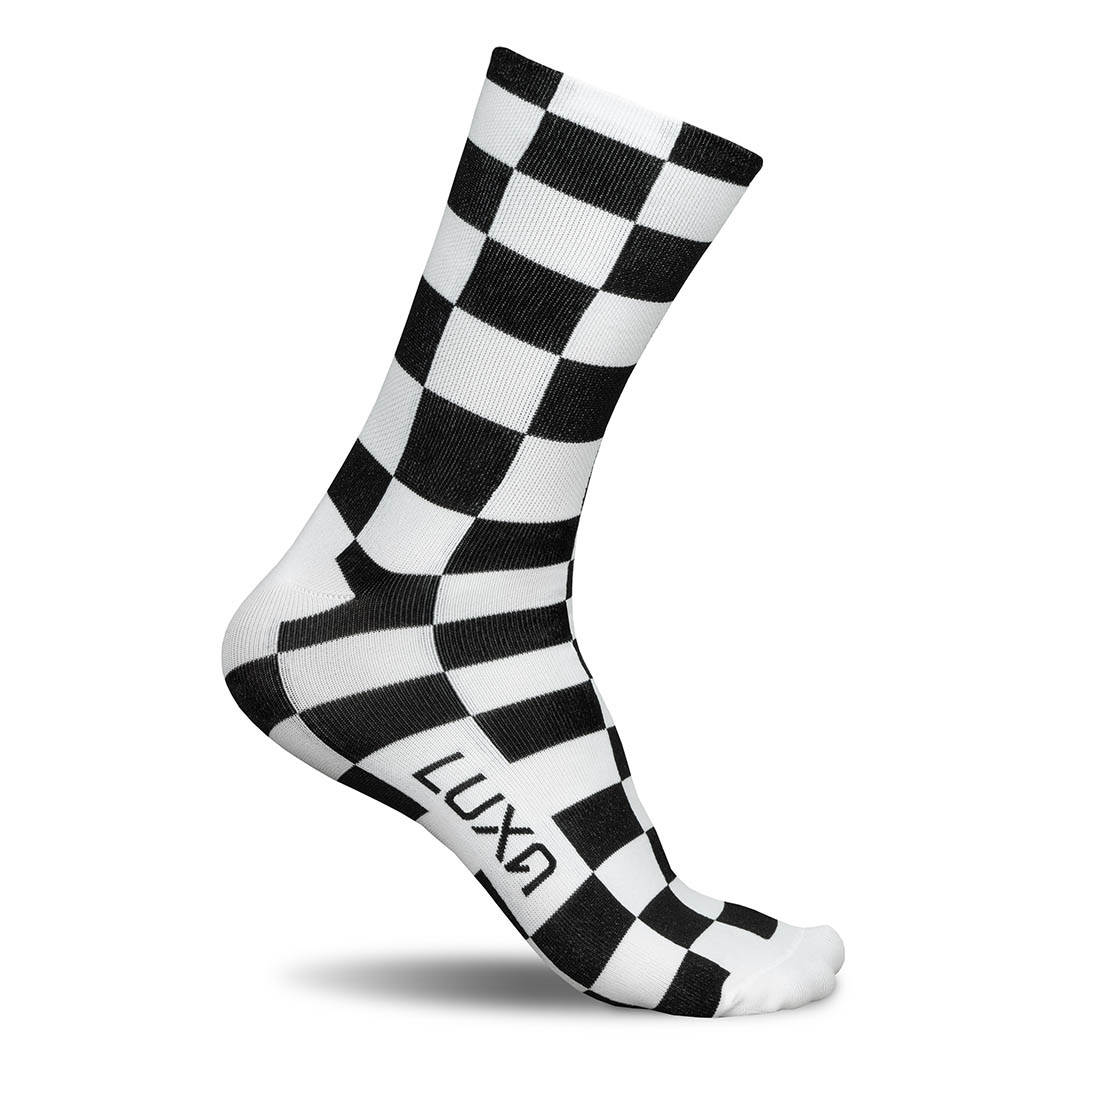 white aerodynamic socks for time trial racing